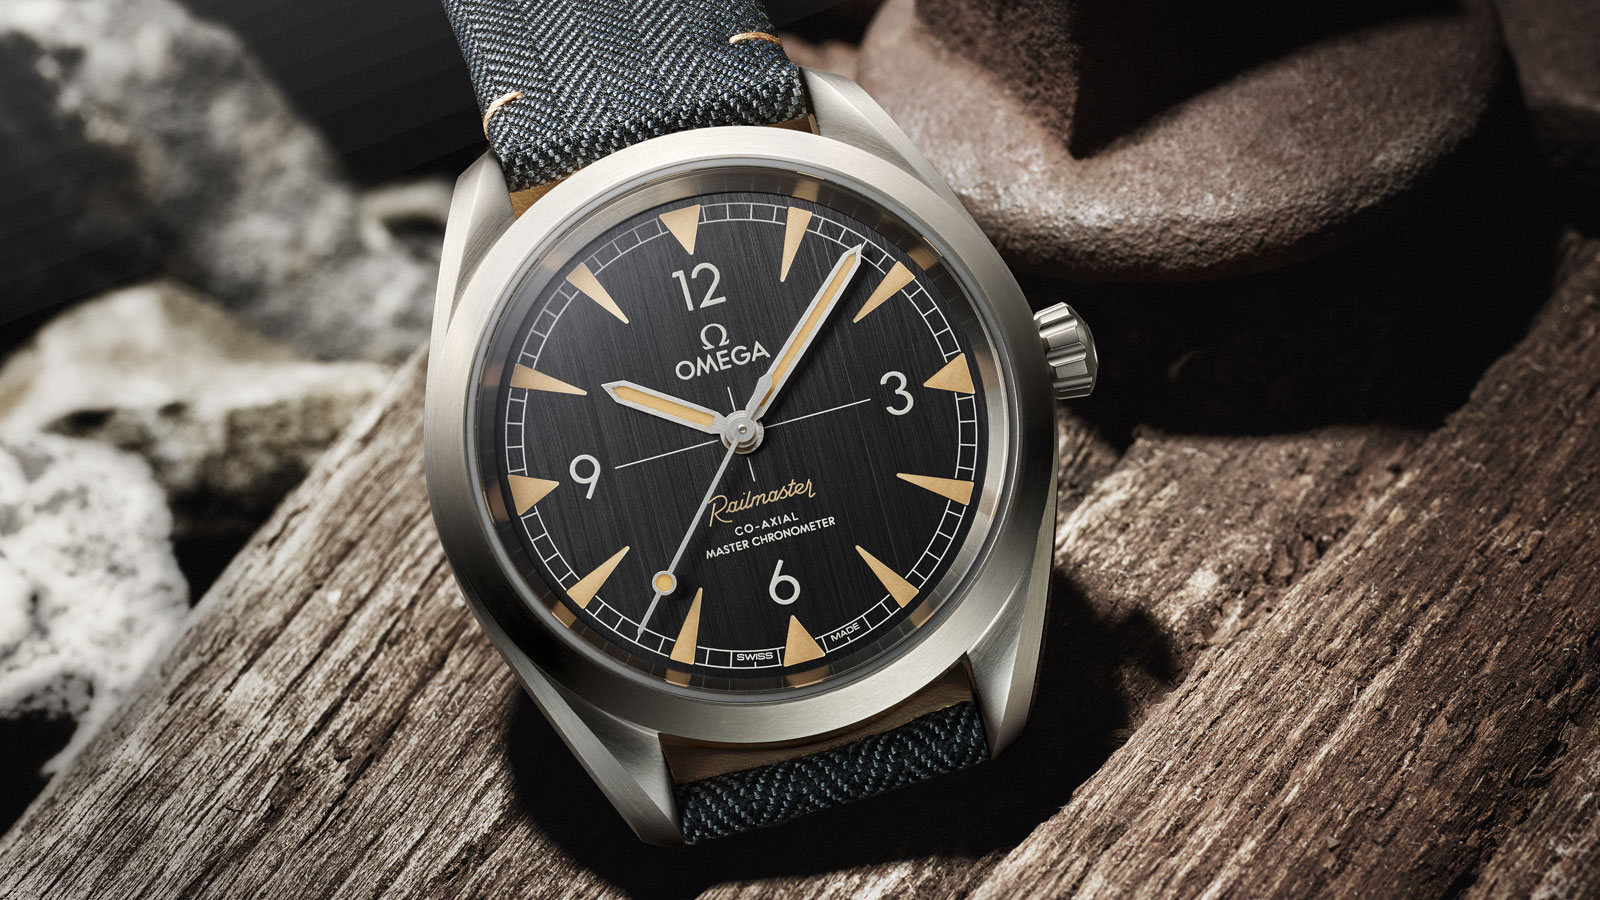 Close view of the case of the Seamaster Railmaster watch with coated nylon fabric strap on a wooden support